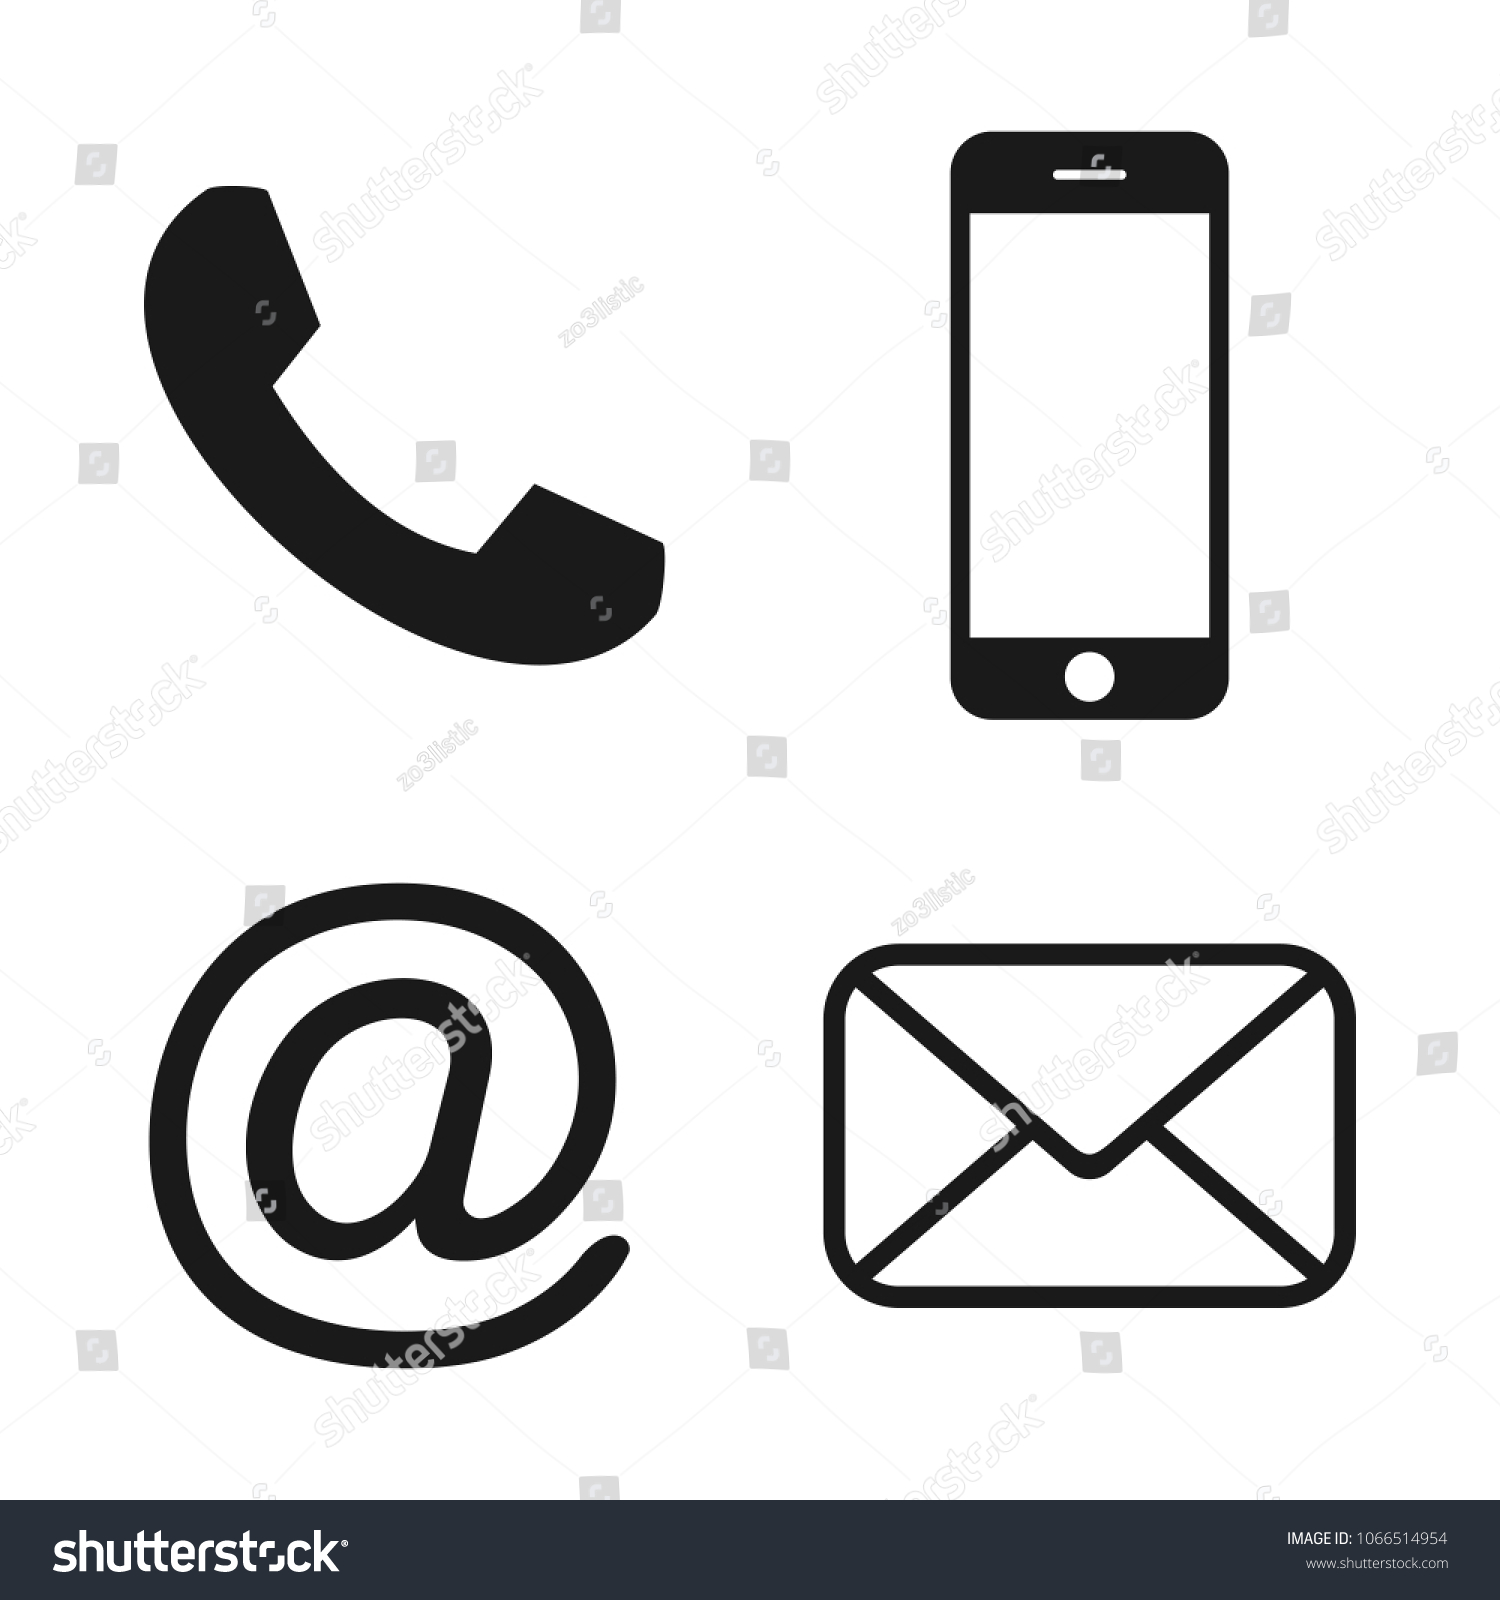 Contact Icons Communication Icon Contact Buttons Stock Vector Royalty Free 1066514954 Each icon is available in vector svg and png format. https www shutterstock com image vector contact icons communication icon buttons email 1066514954